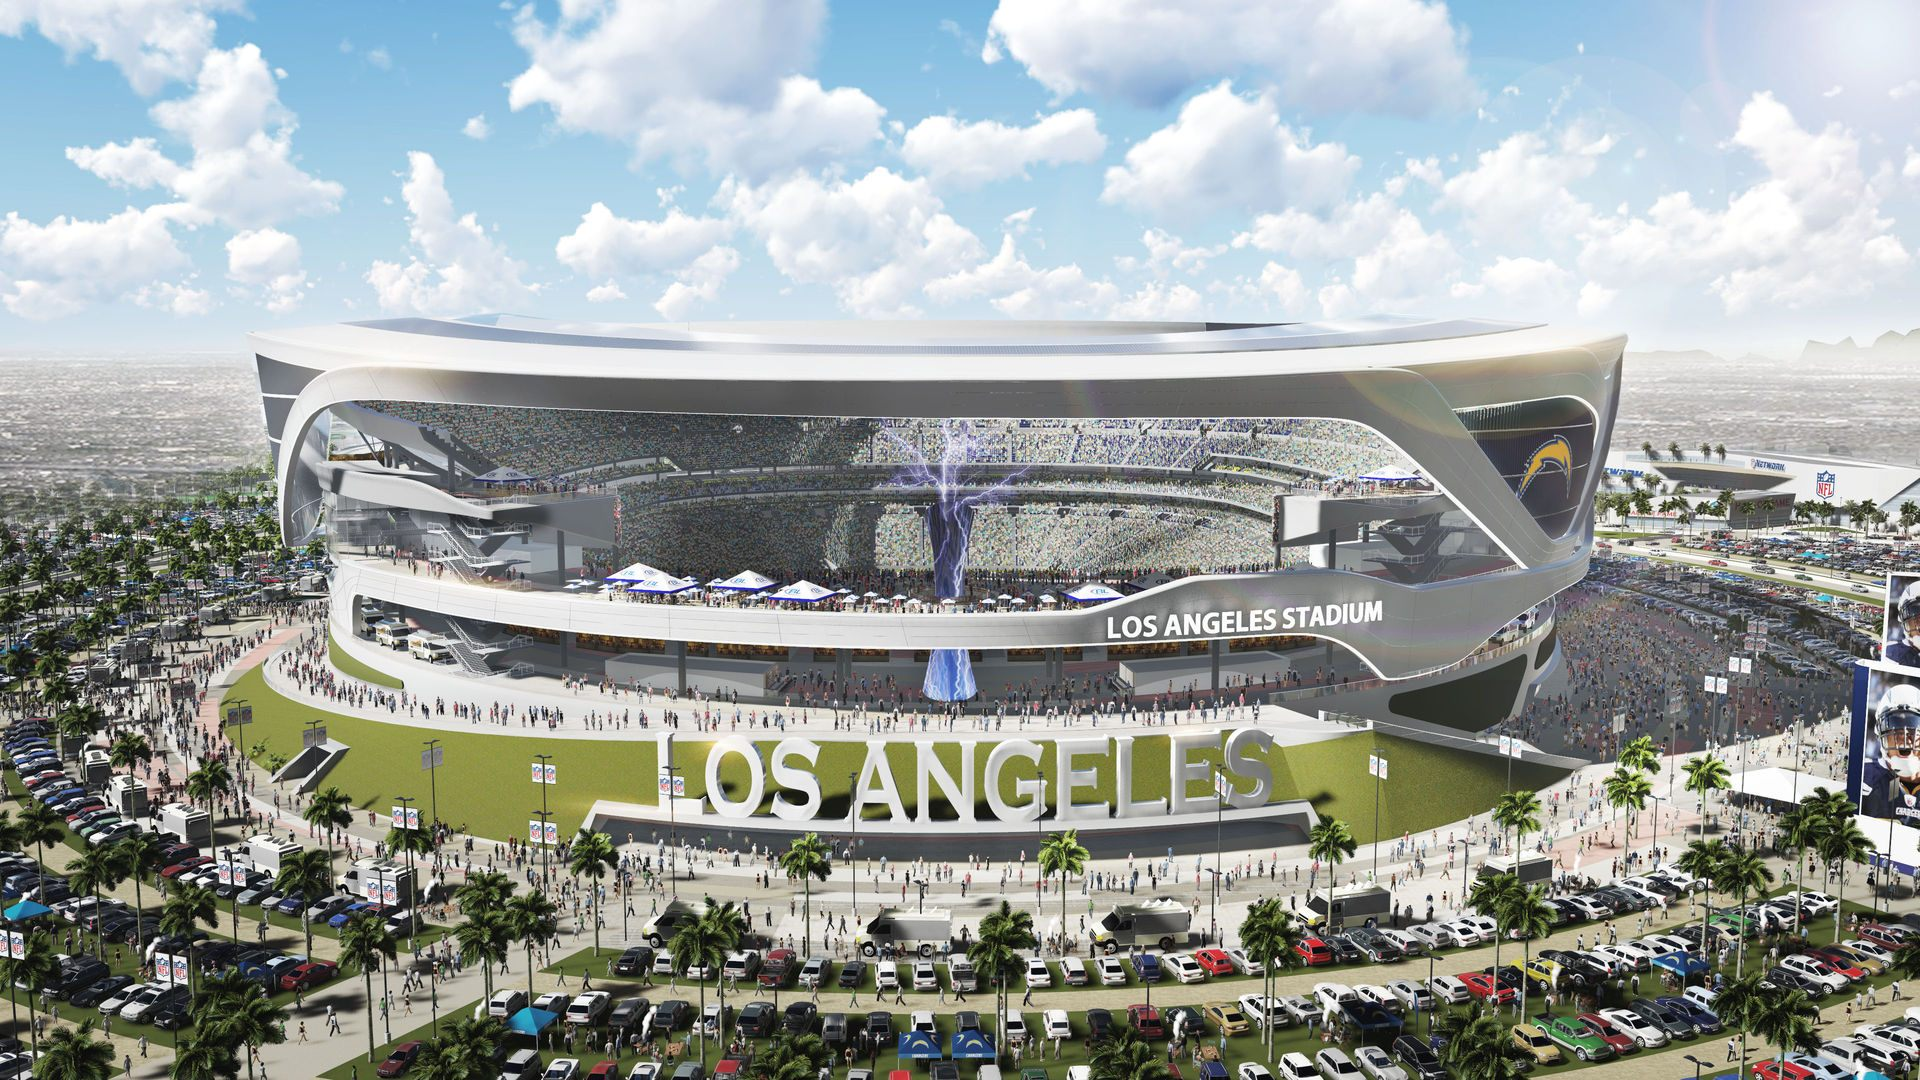 Design Los Angeles Stadium Stadiumdb Com